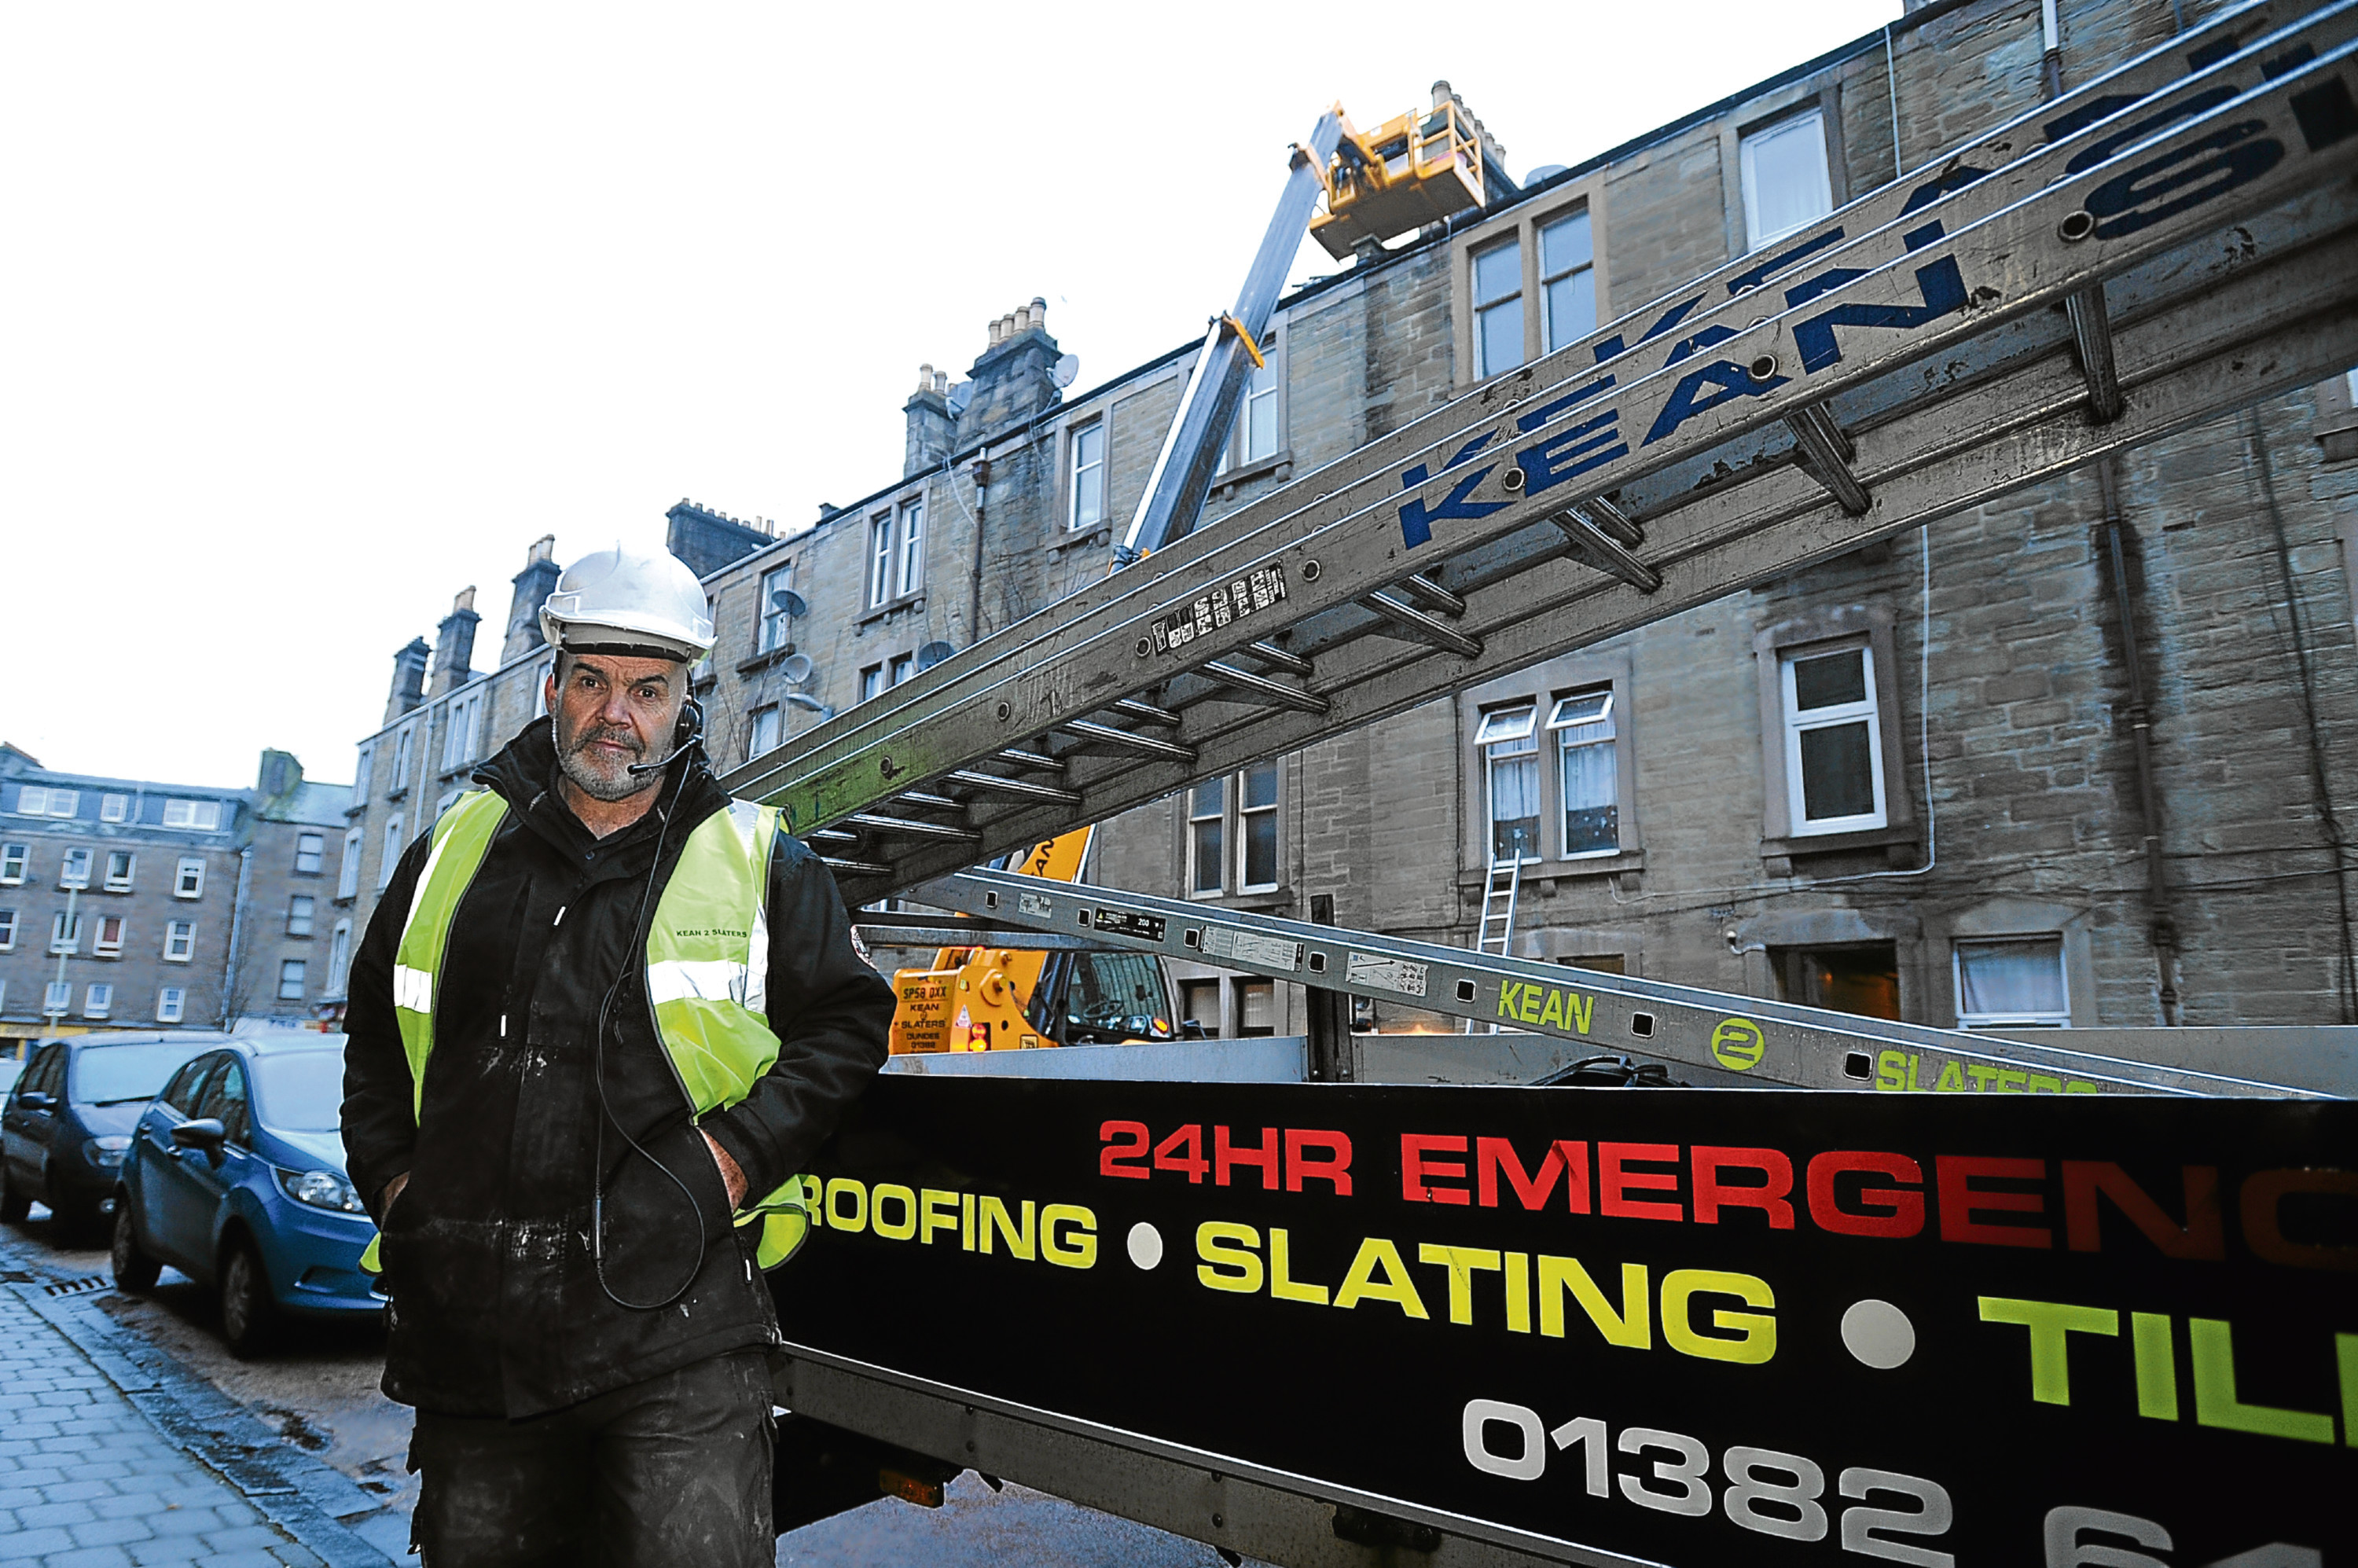 Charlie Kean, whose men suffered the loss while working on a property in Park Avenue, Dundee.